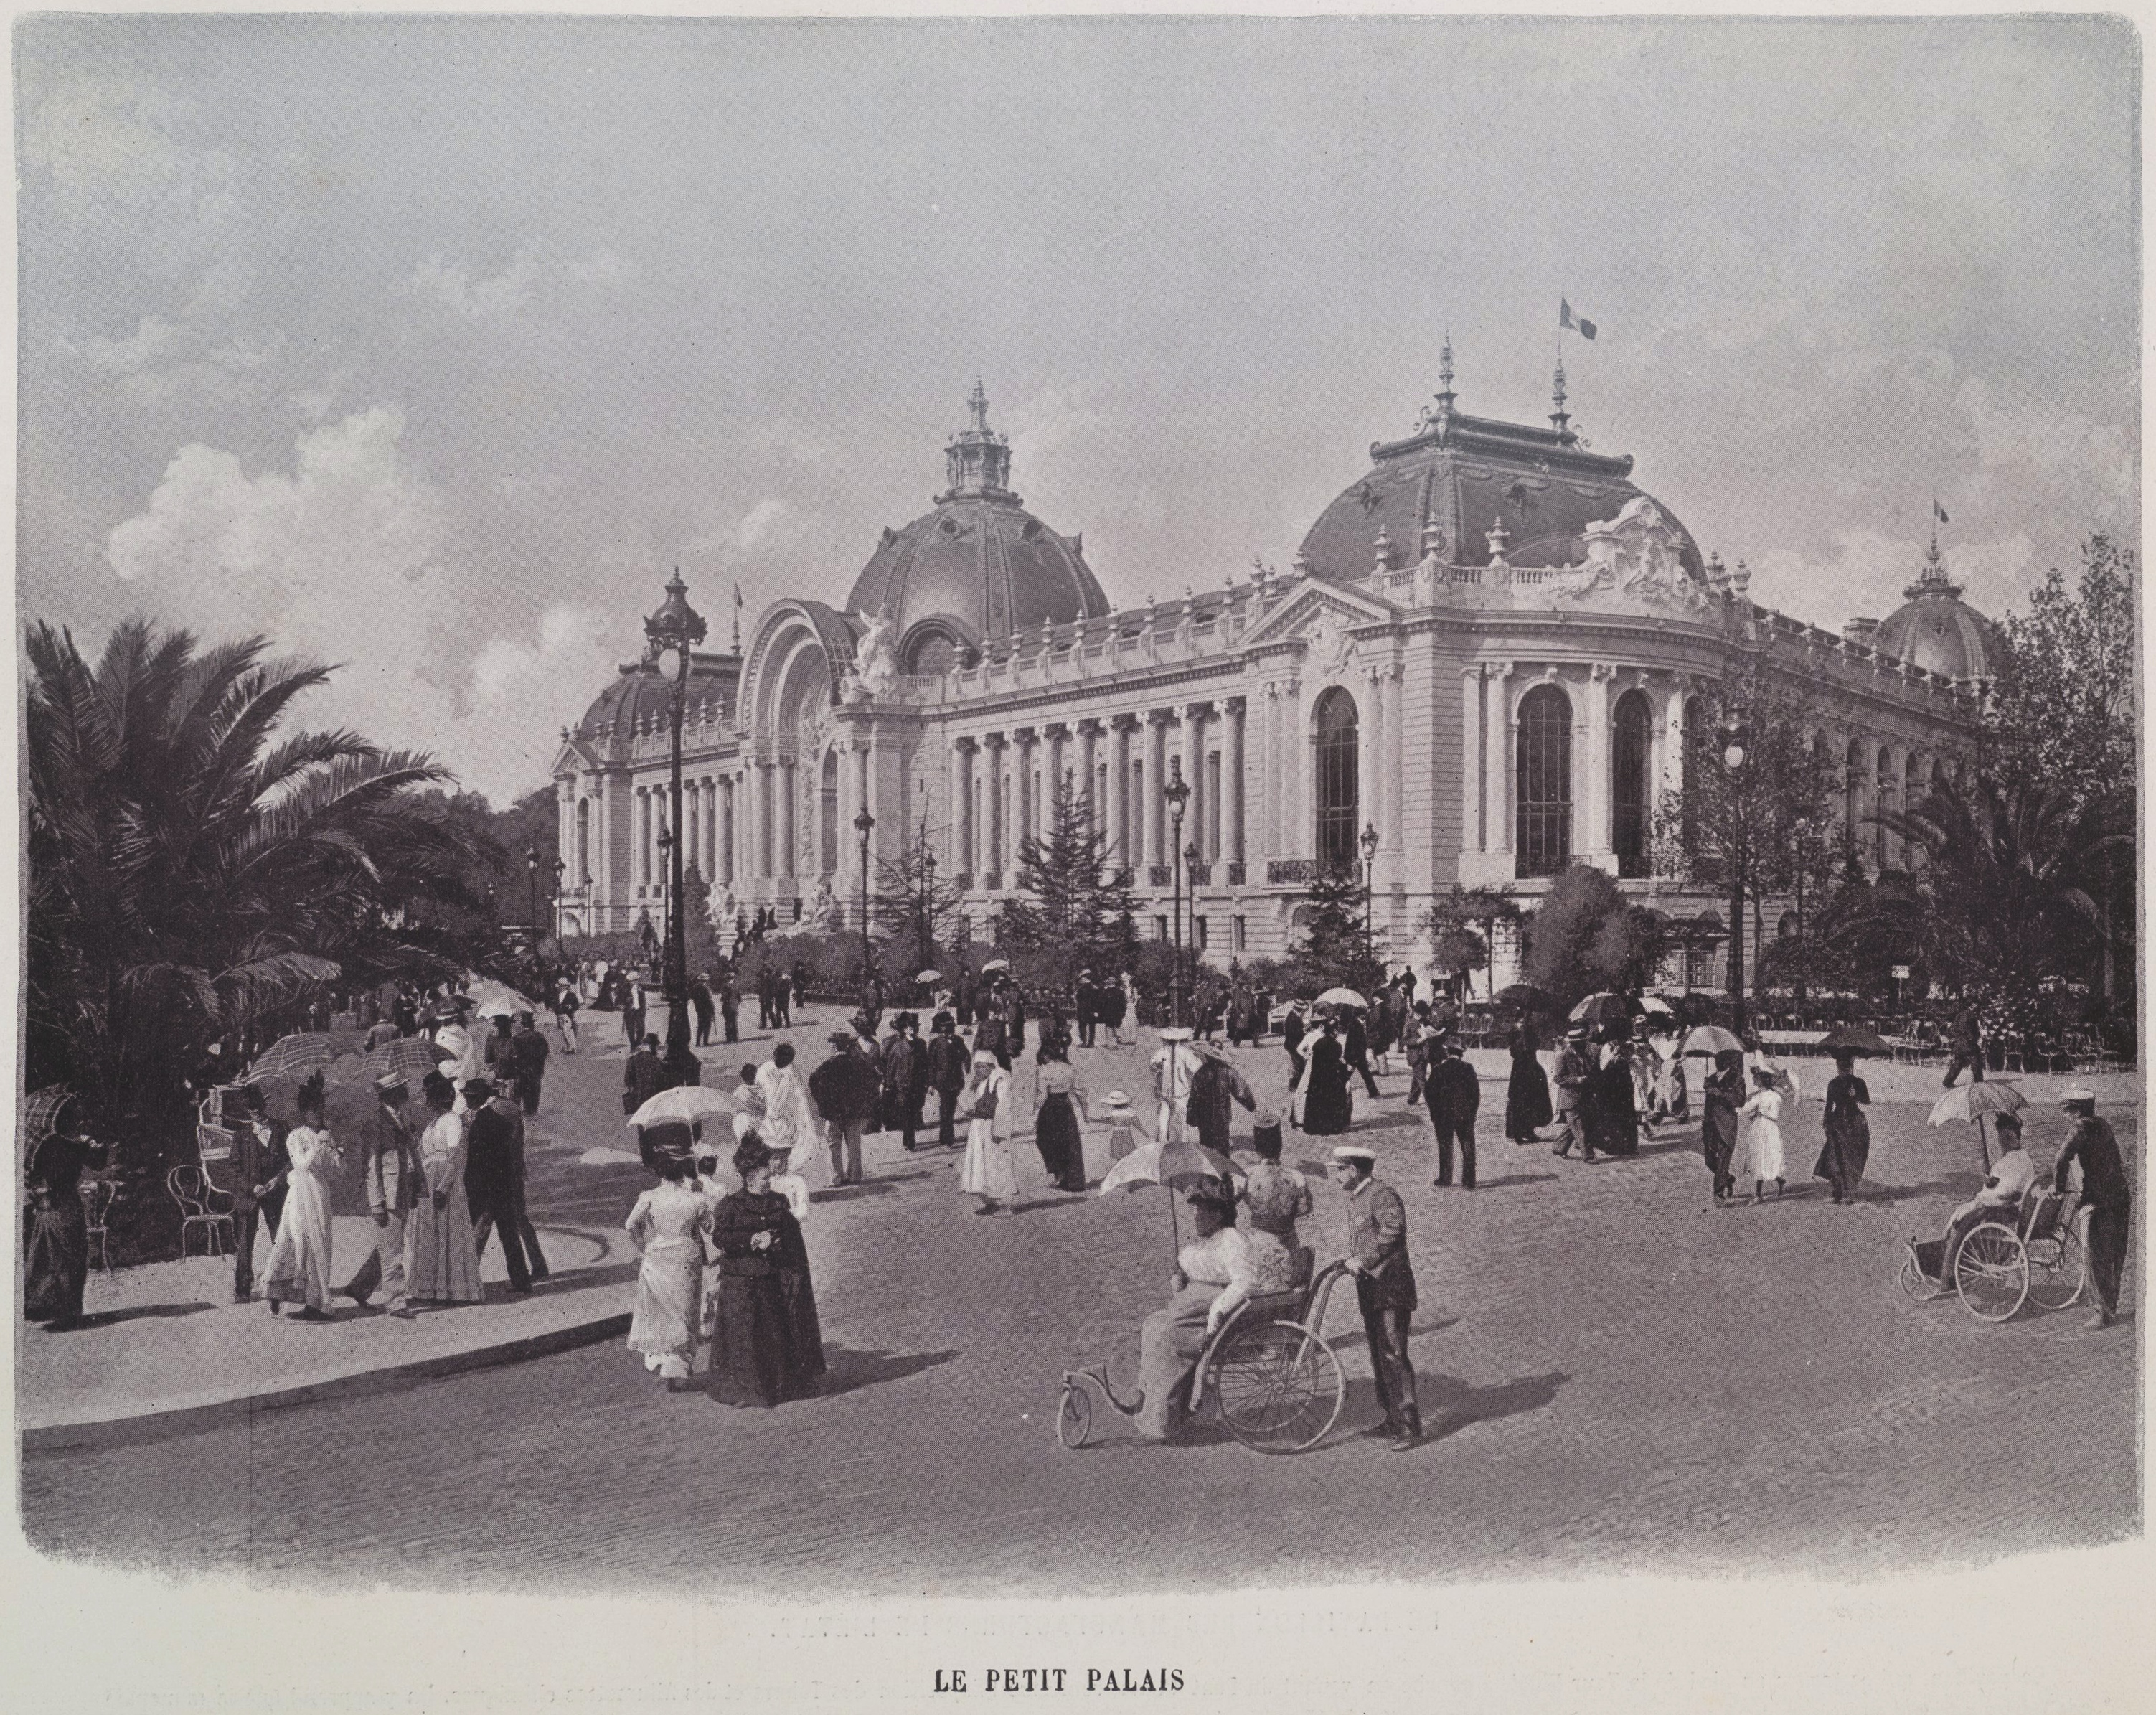 1000 images about art material exposition universelle paris 1900 on pinterest - Exposition paris grand palais ...